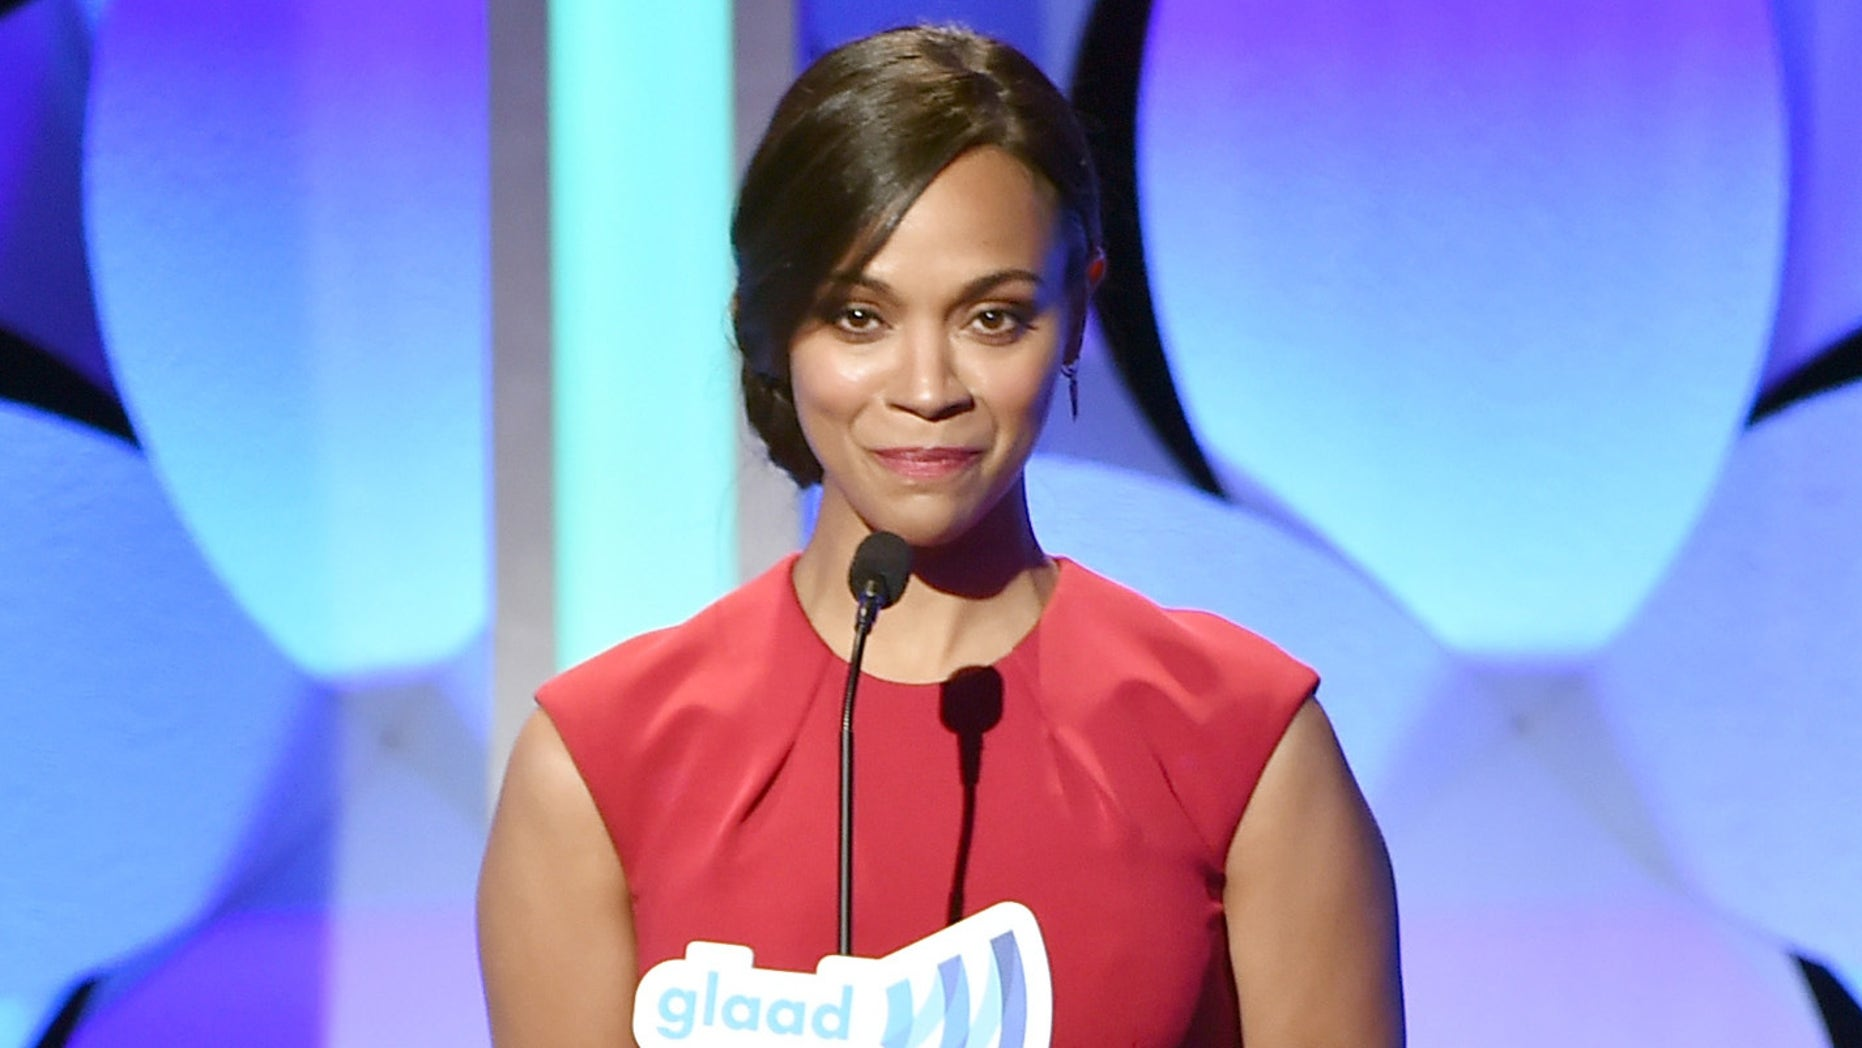 BEVERLY HILLS, CA - MARCH 21:  Actress Zoe Saldana speaks onstage during the 26th Annual GLAAD Media Awards at The Beverly Hilton Hotel on March 21, 2015 in Beverly Hills, California.  (Photo by Kevin Winter/Getty Images for GLAAD)